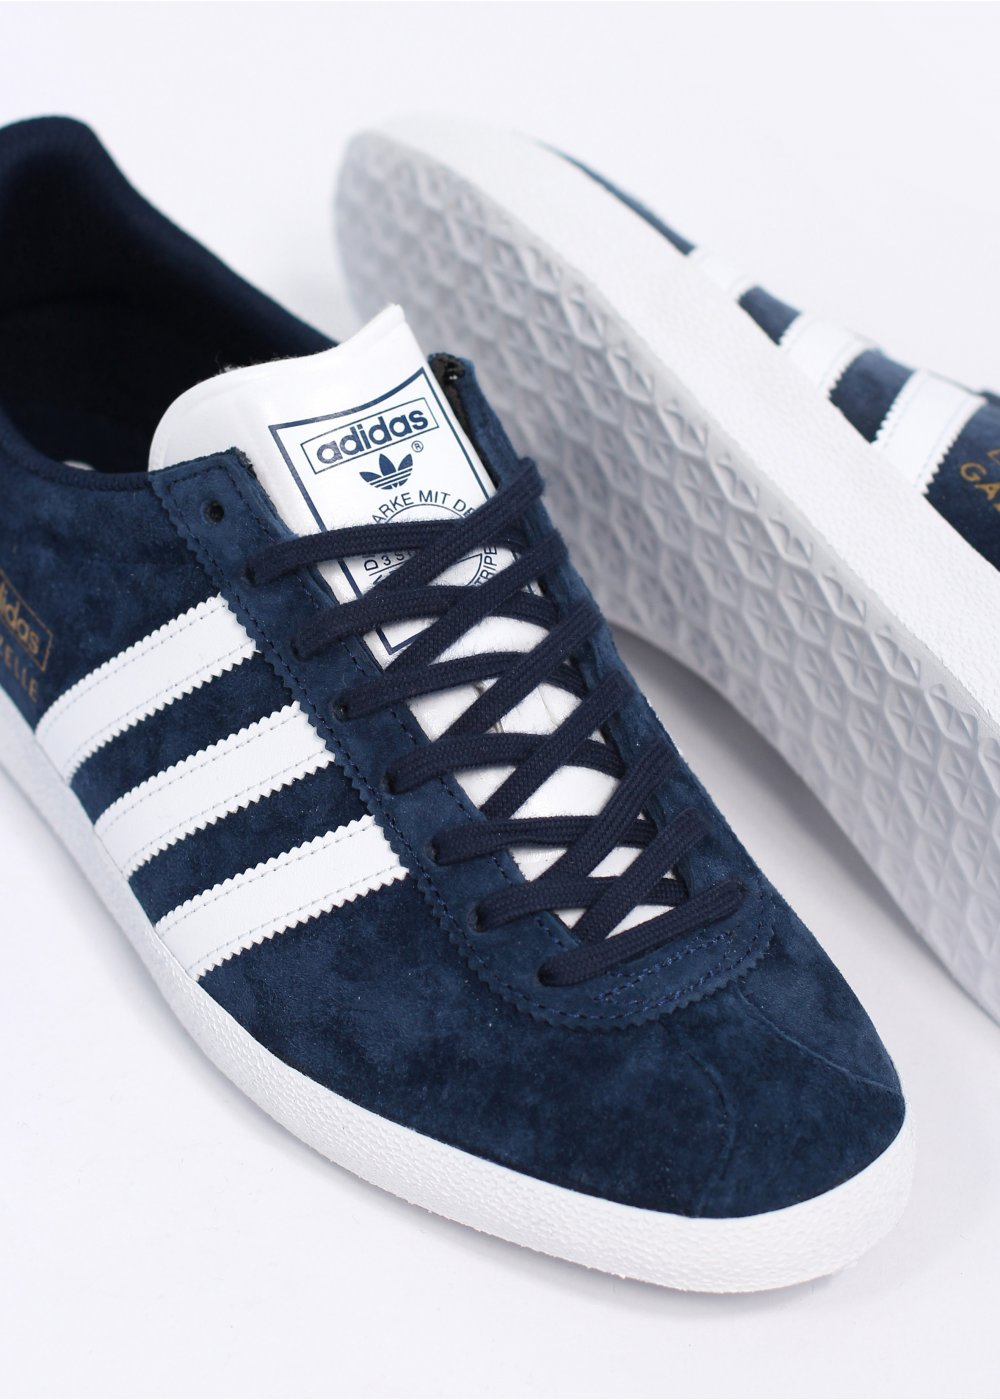 Buy adidas gazelle og navy > OFF61% Discounted